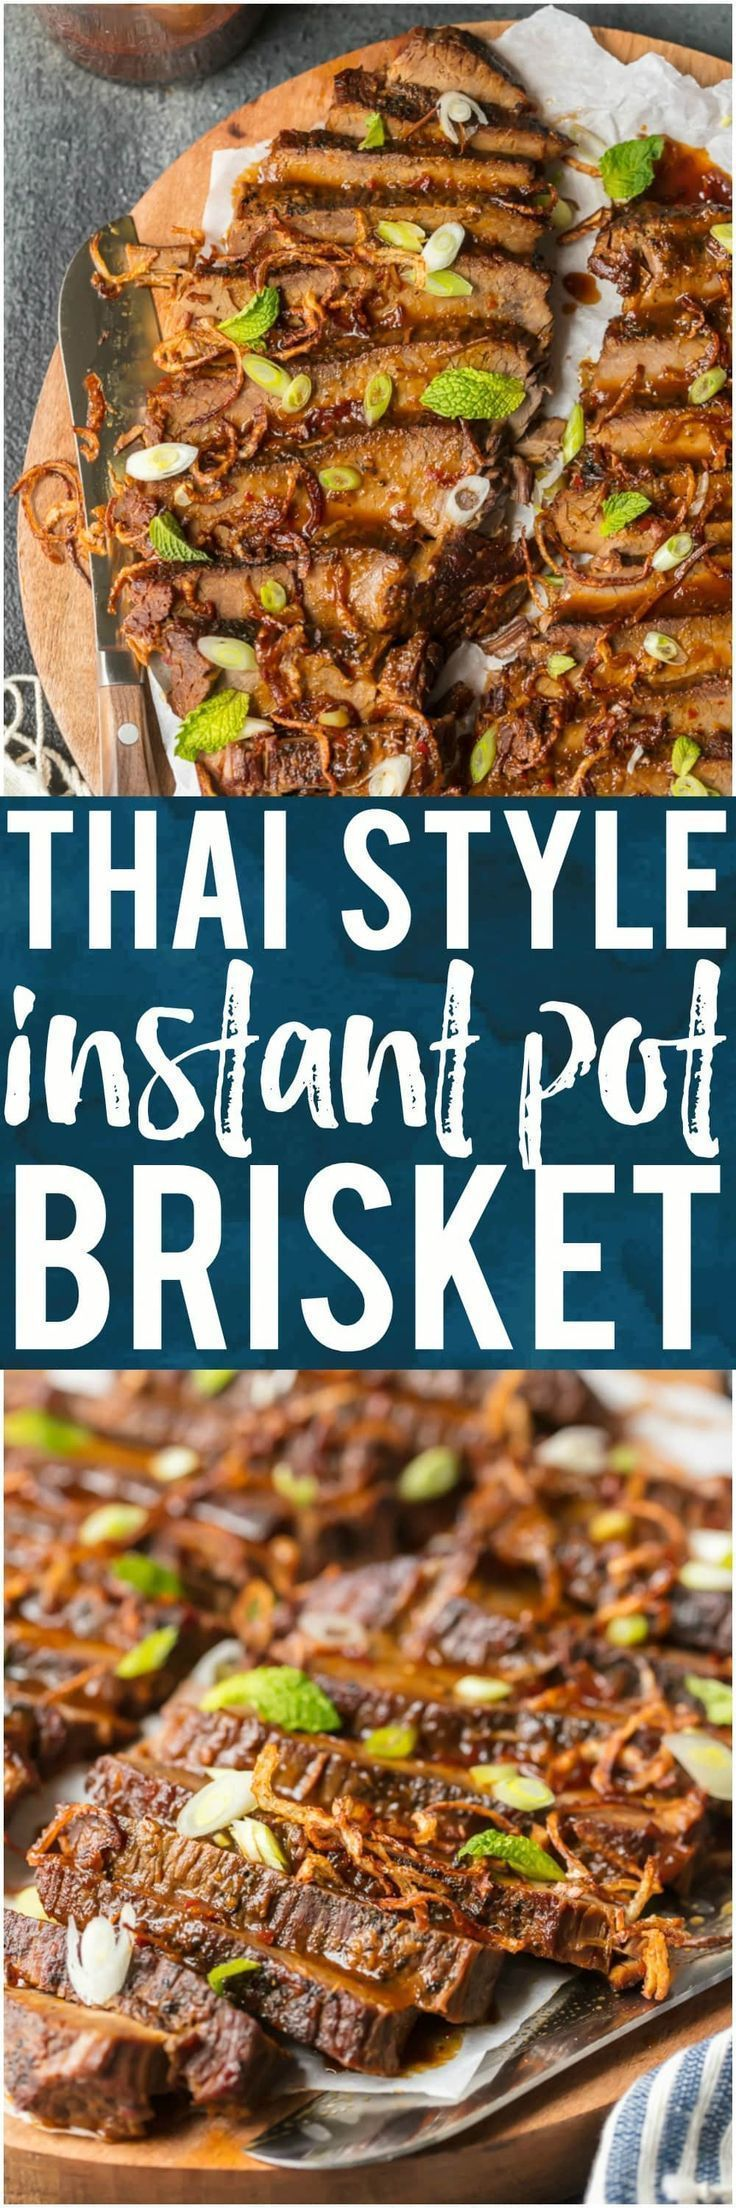 I'm obsessed with this THAI STYLE INSTANT POT BRISKET! The flavor is incredible and the pressure cooker makes things so quick and easy. This is a winning recipe that our family will make again and again. #instantpot #pressurecooker #beef #brisket #mint #easyrecipe